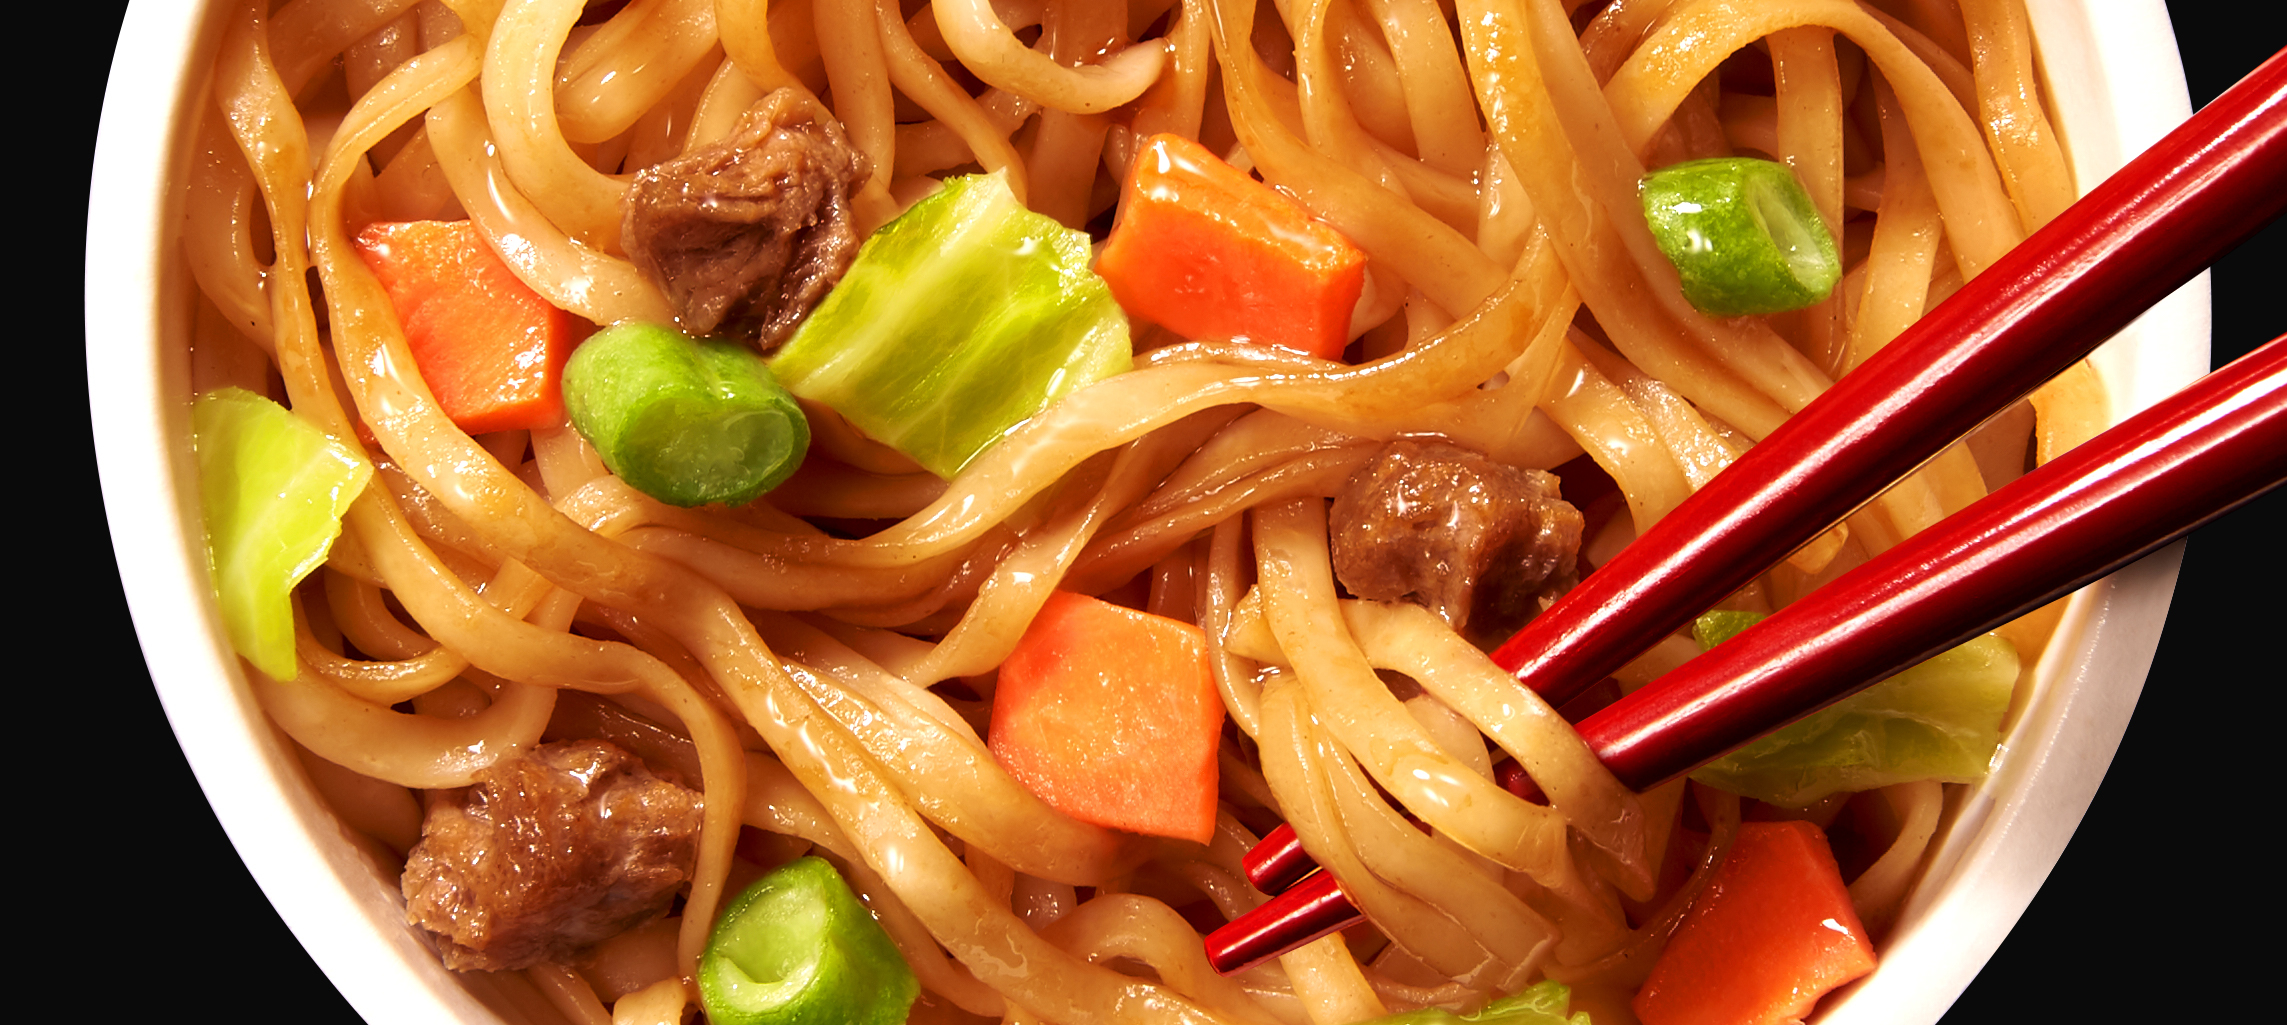 Cn Stir Fry Product Page Header Image Final